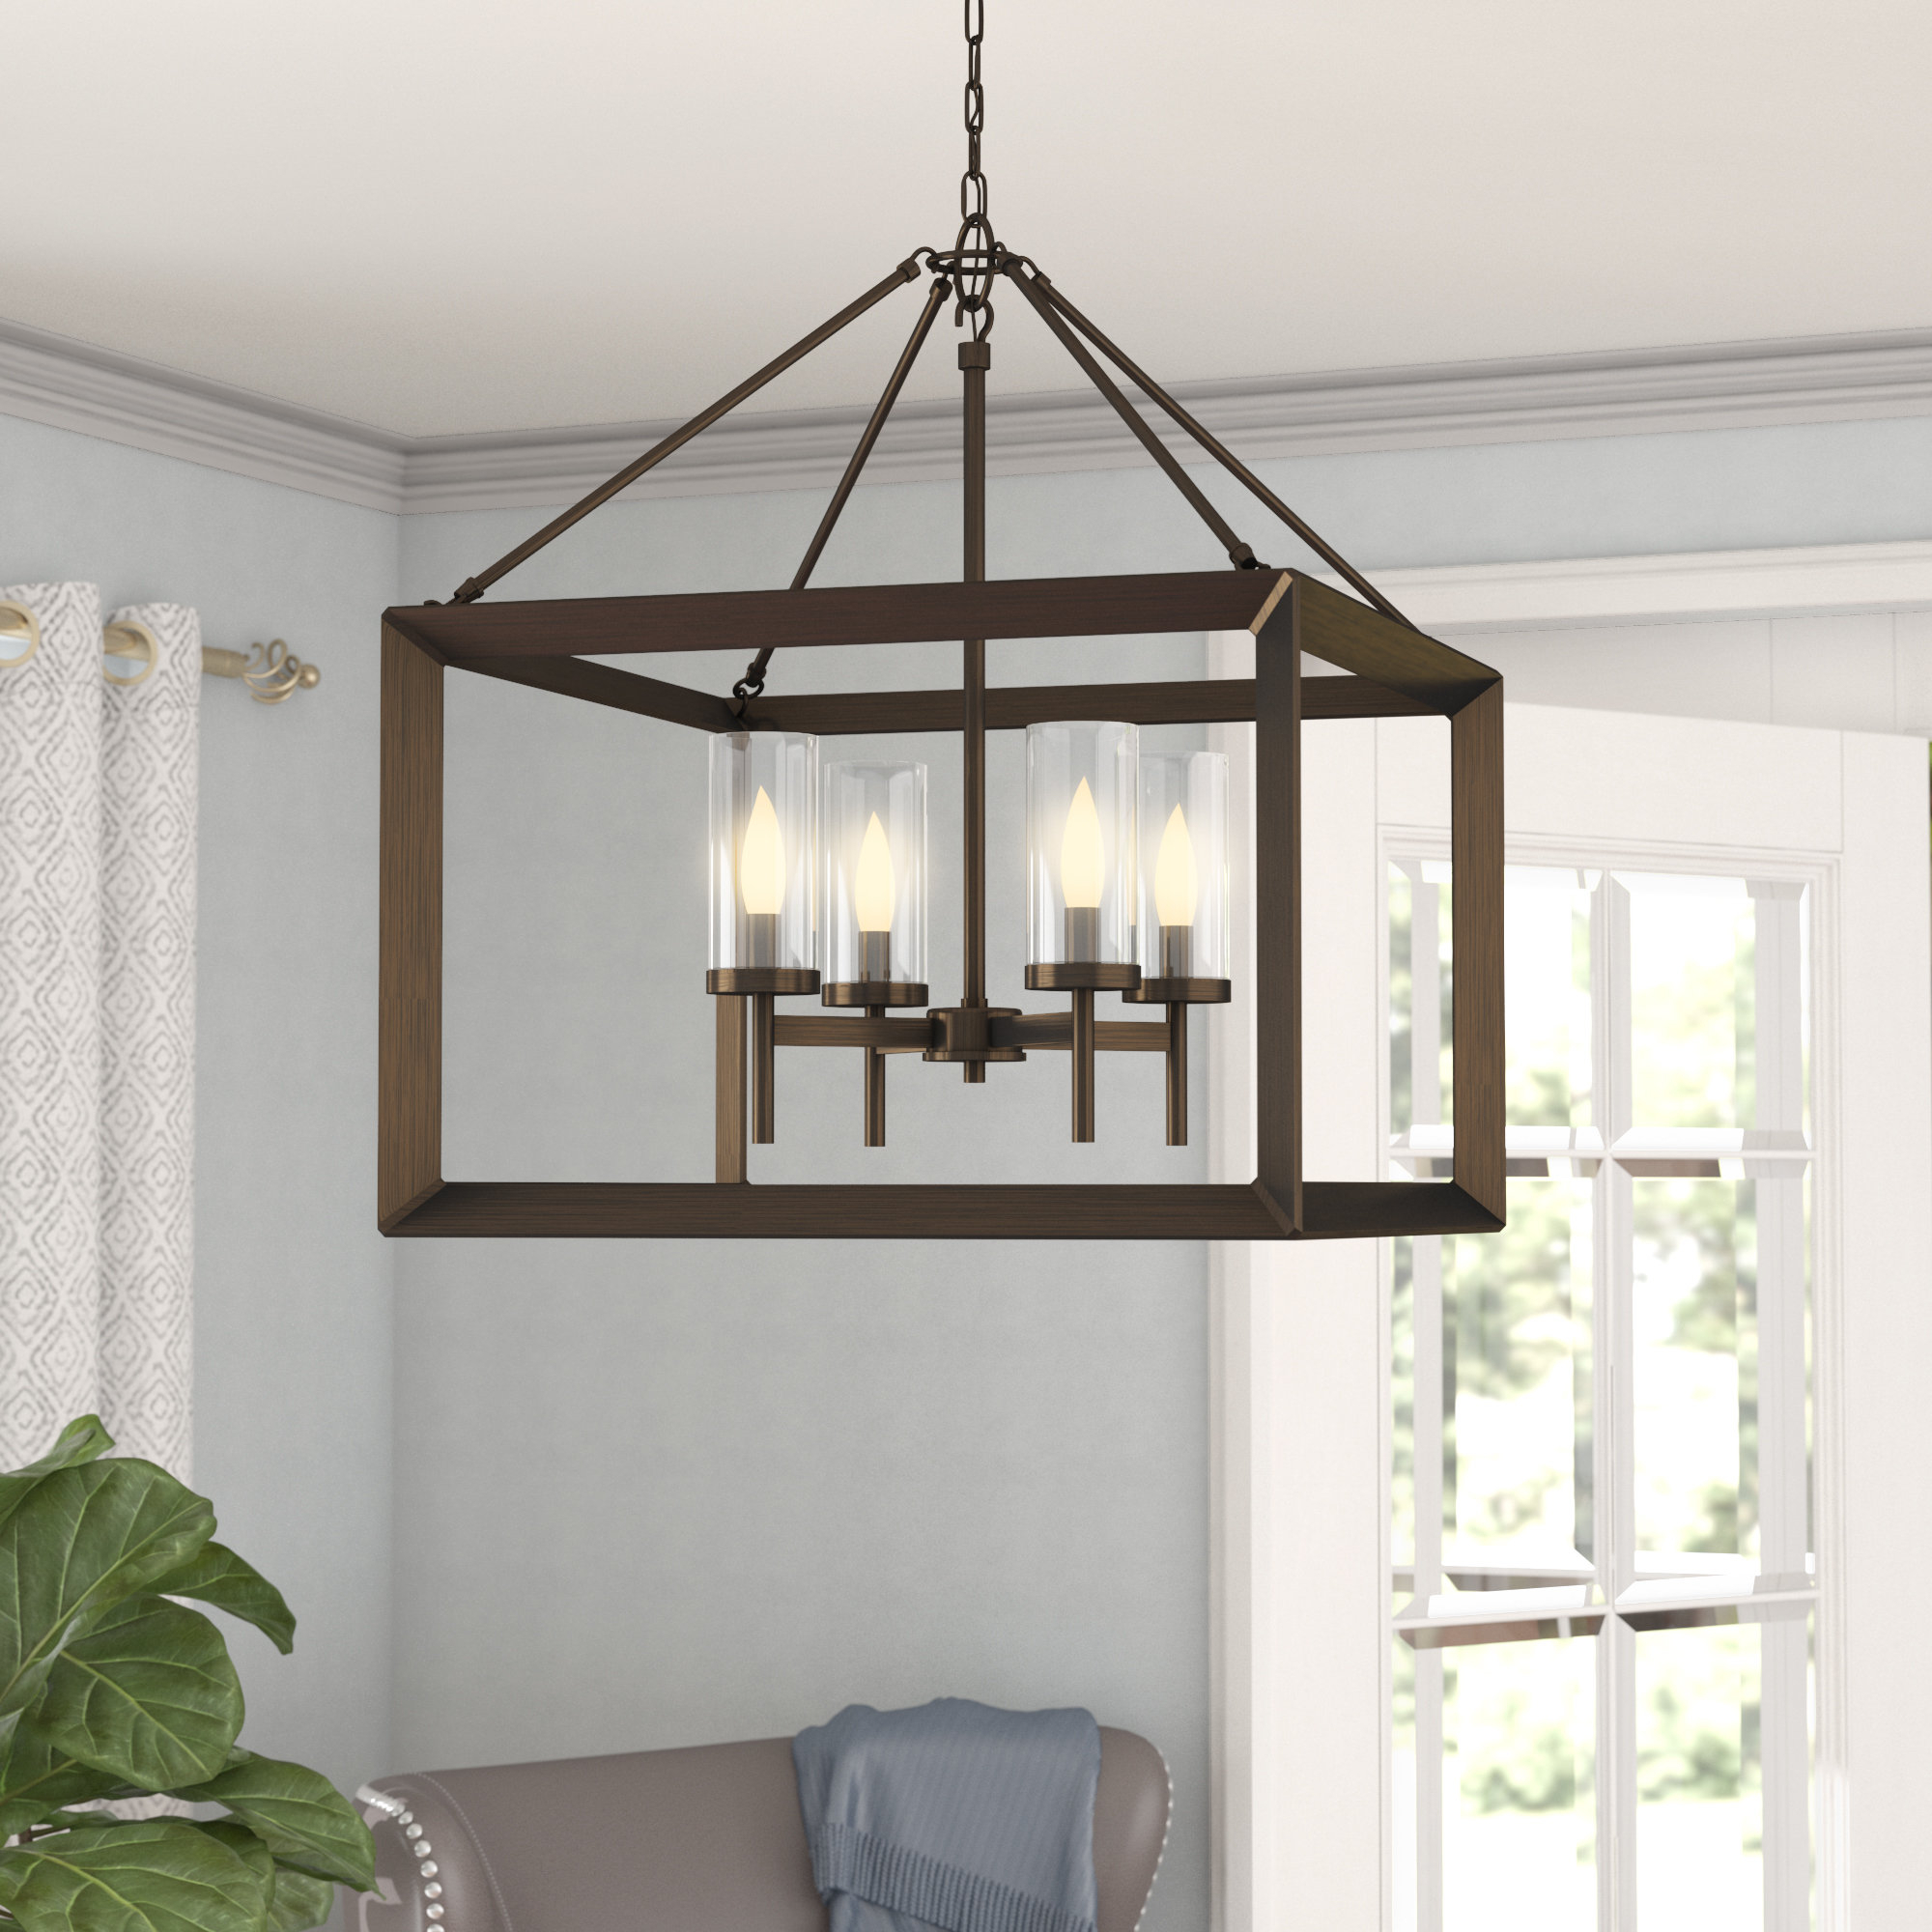 Popular Thorne 4 Light Lantern Rectangle Pendant For Thorne 6 Light Lantern Square / Rectangle Pendants (View 7 of 20)